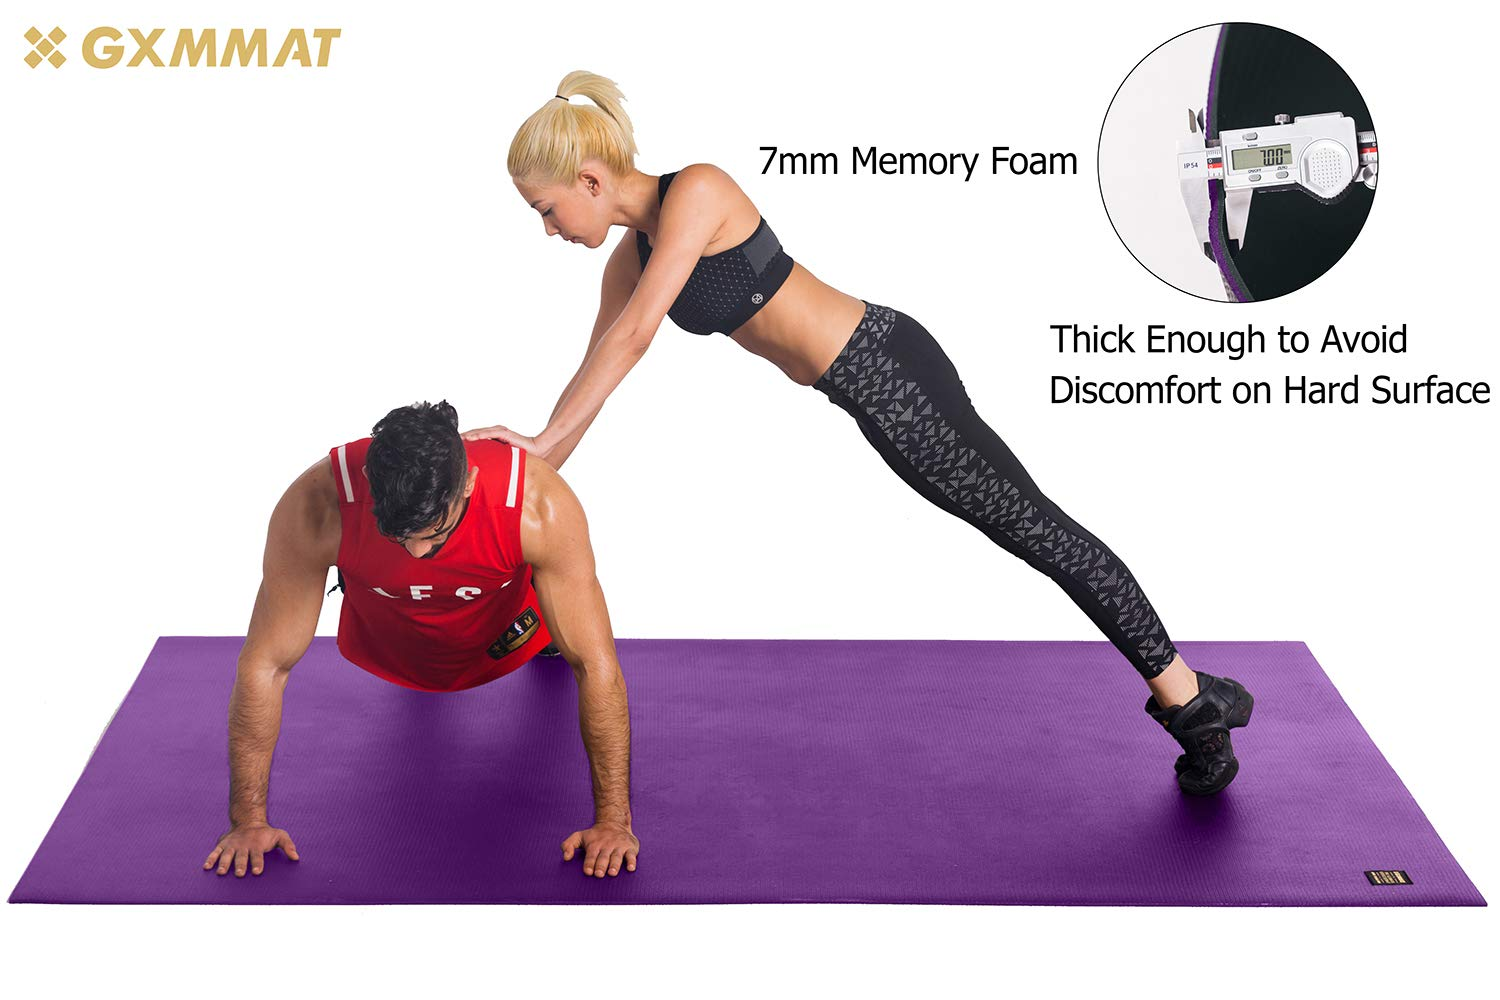 Gxmmat Extra Large Exercise Mat 6'x8'x7mm for Home Gym Flooring, Ultra Durable Cardio Workout Mats Non-Slip,Non-Toxic, Ideal for MMA, Plyo, Jump, All-Purpose Fitness by Gxmmat (Image #4)